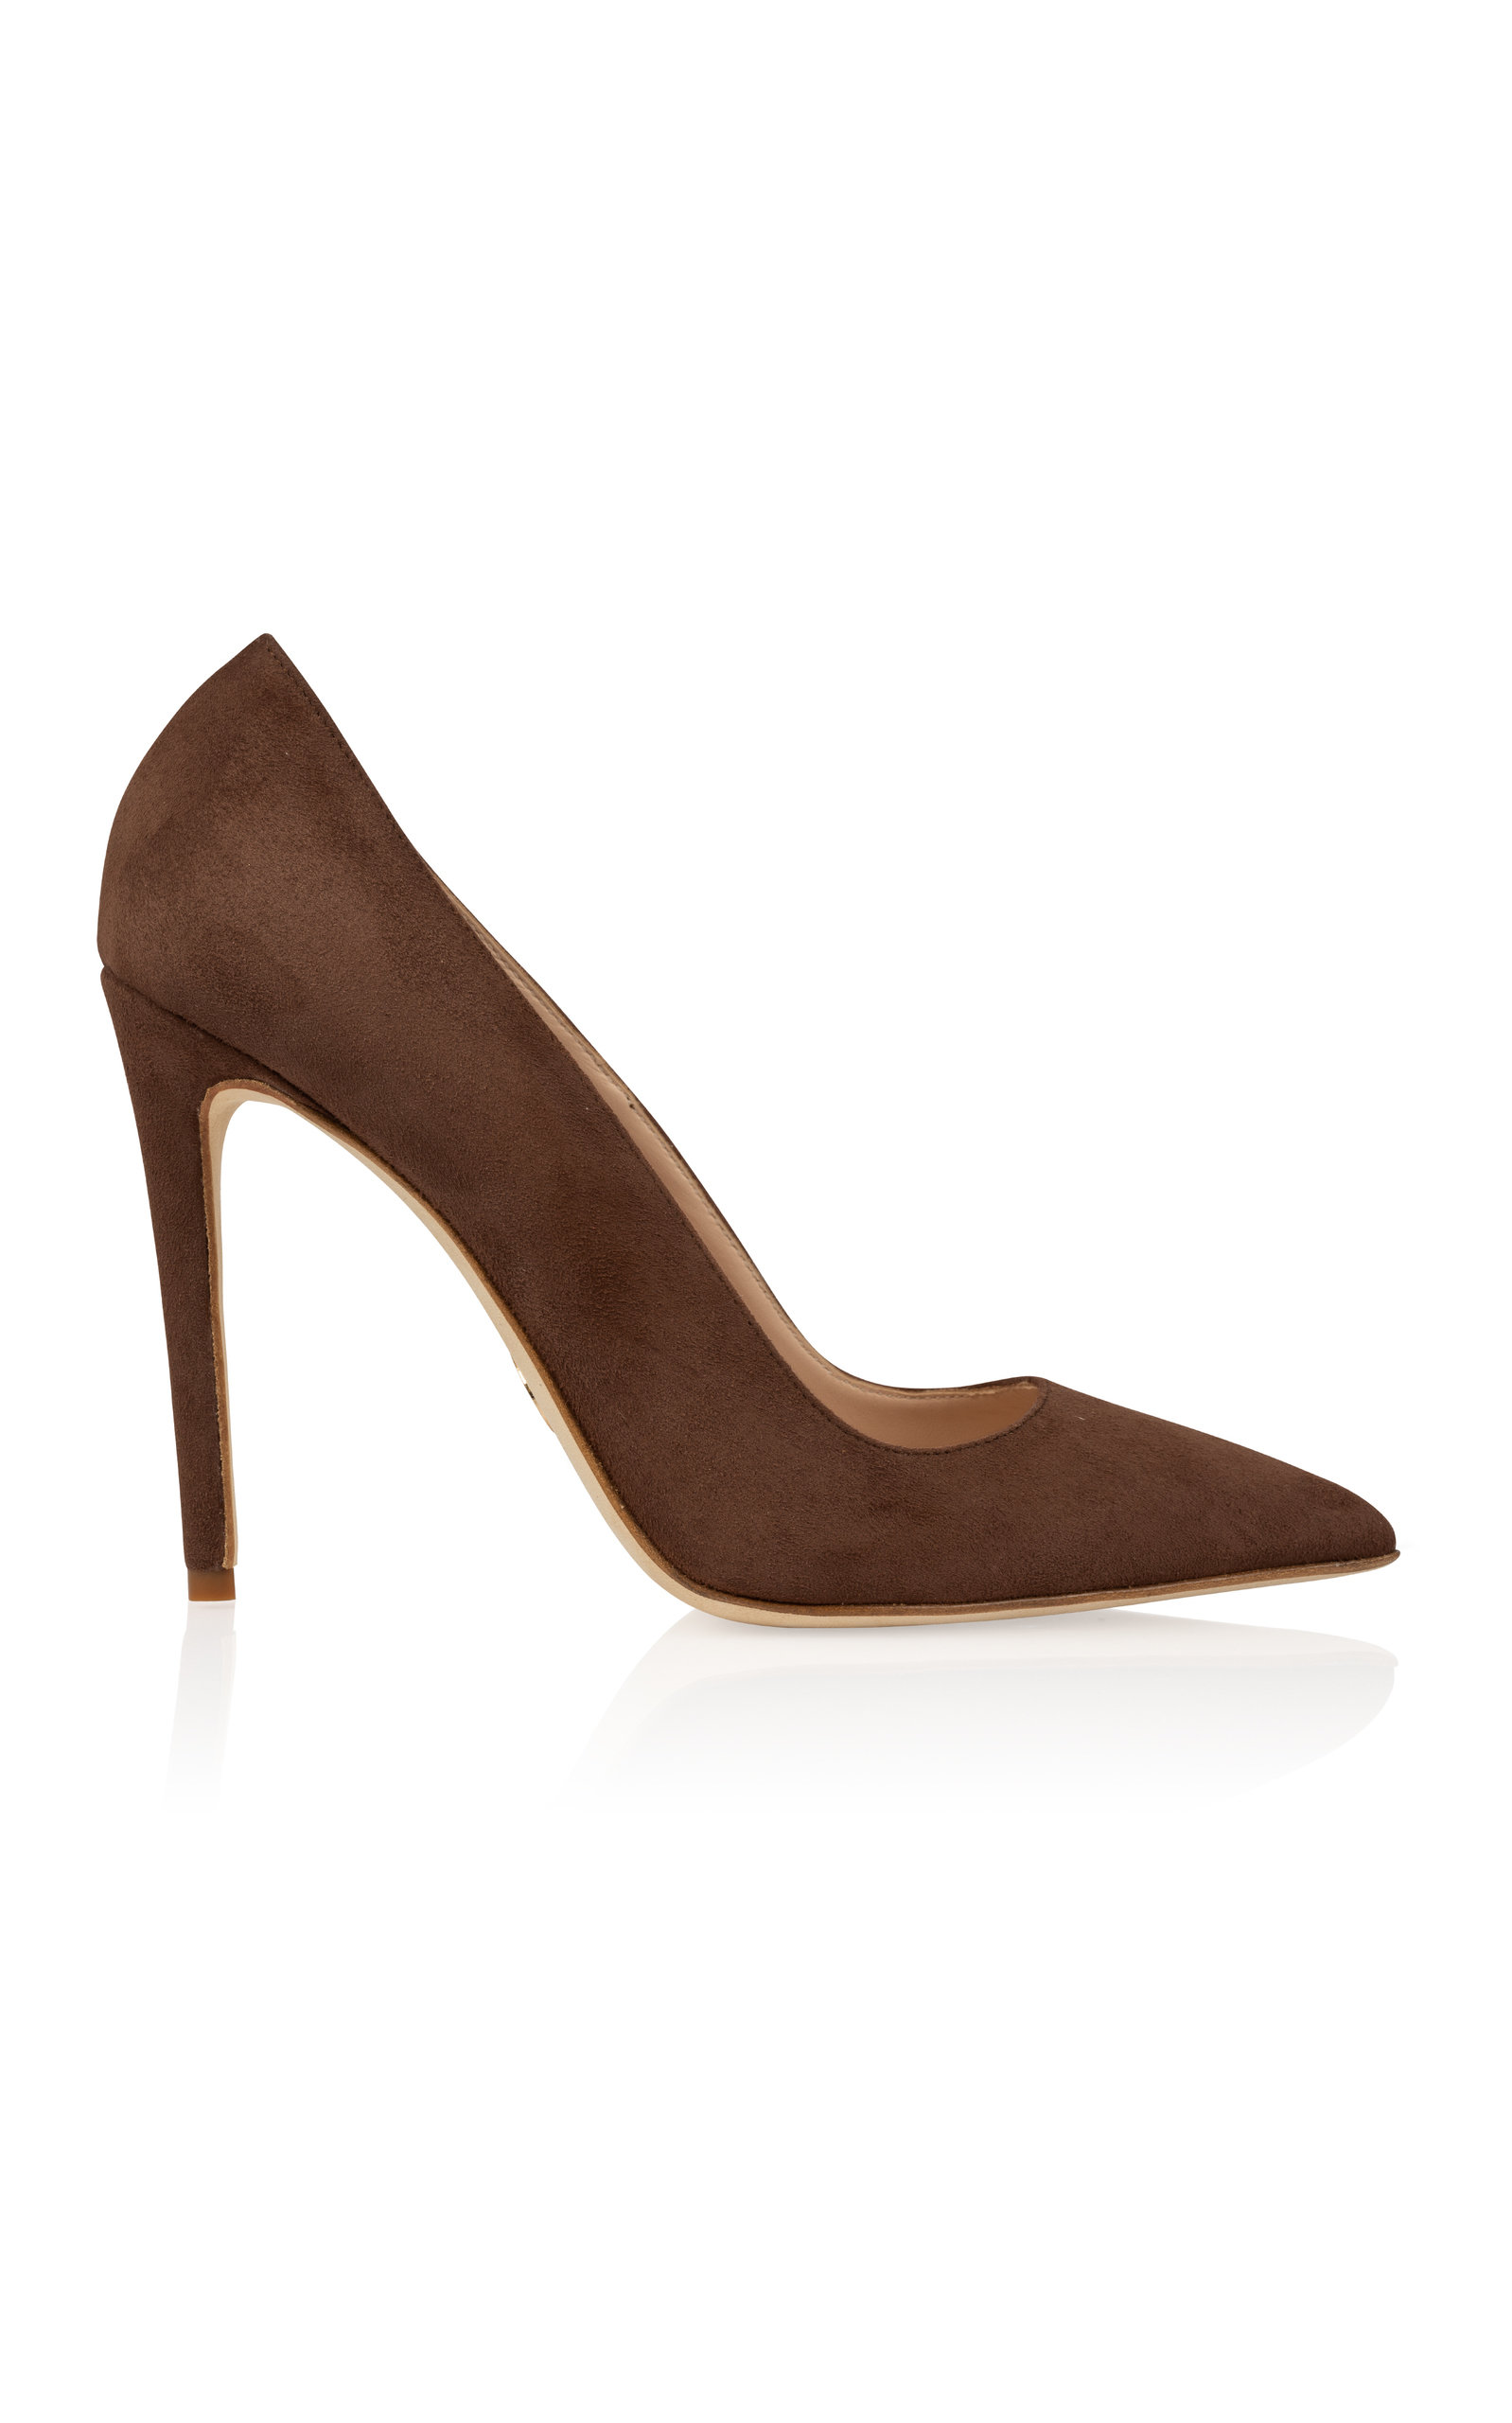 Brother Vellies Pumps M'O EXCLUSIVE NINA THE NEW NUDE PUMPS